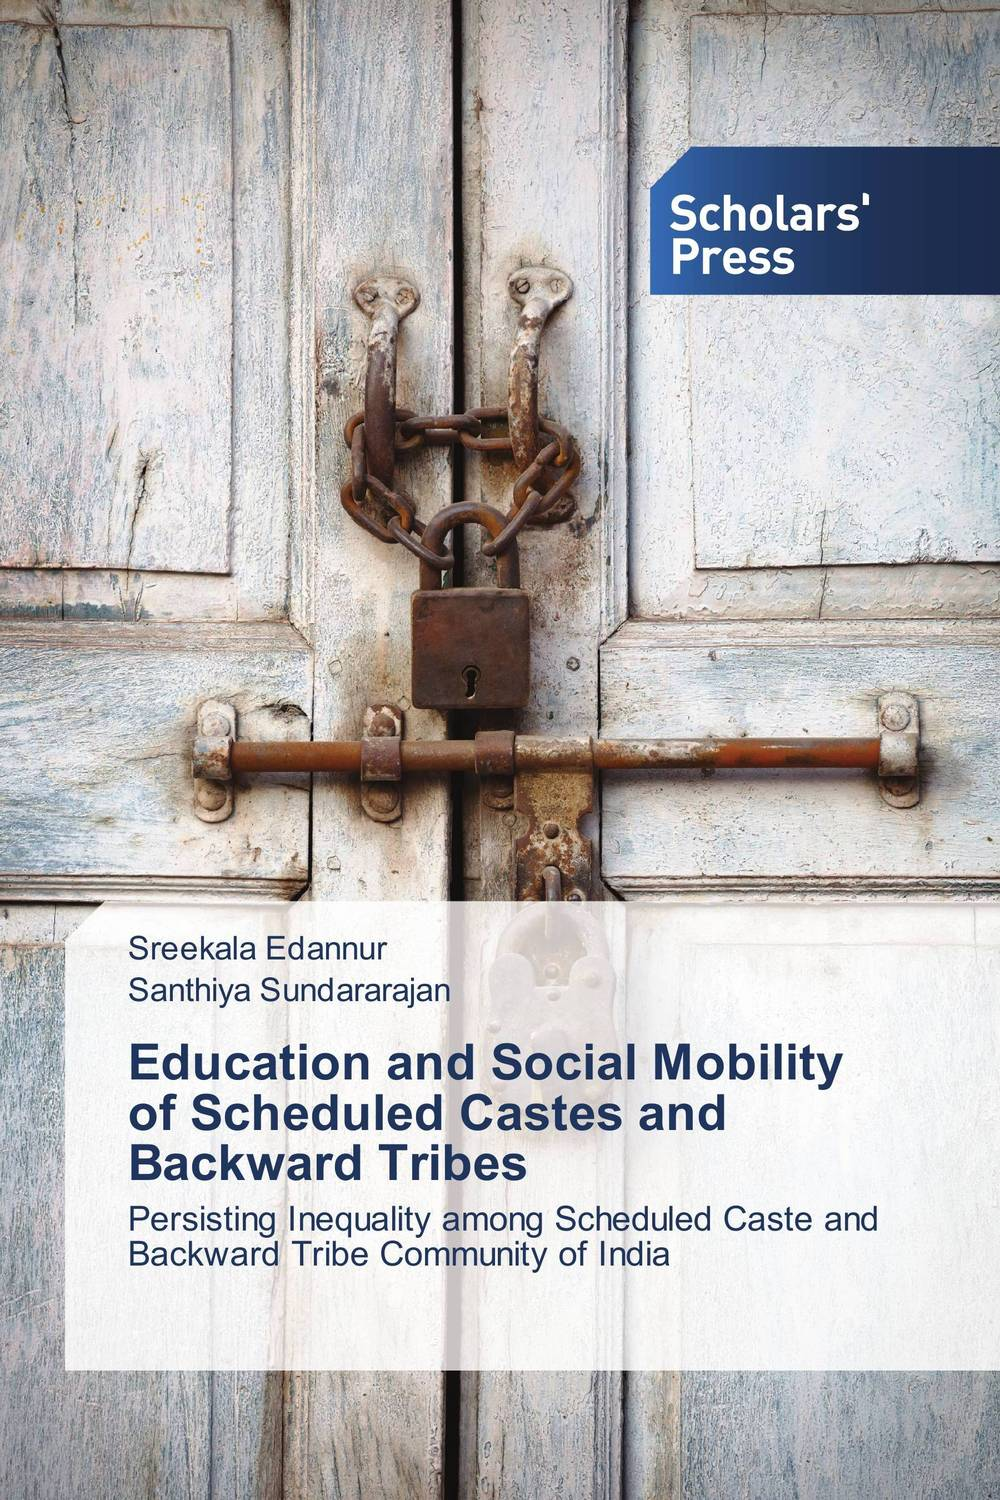 Education and Social Mobility of Scheduled Castes and Backward Tribes space and mobility in palestine